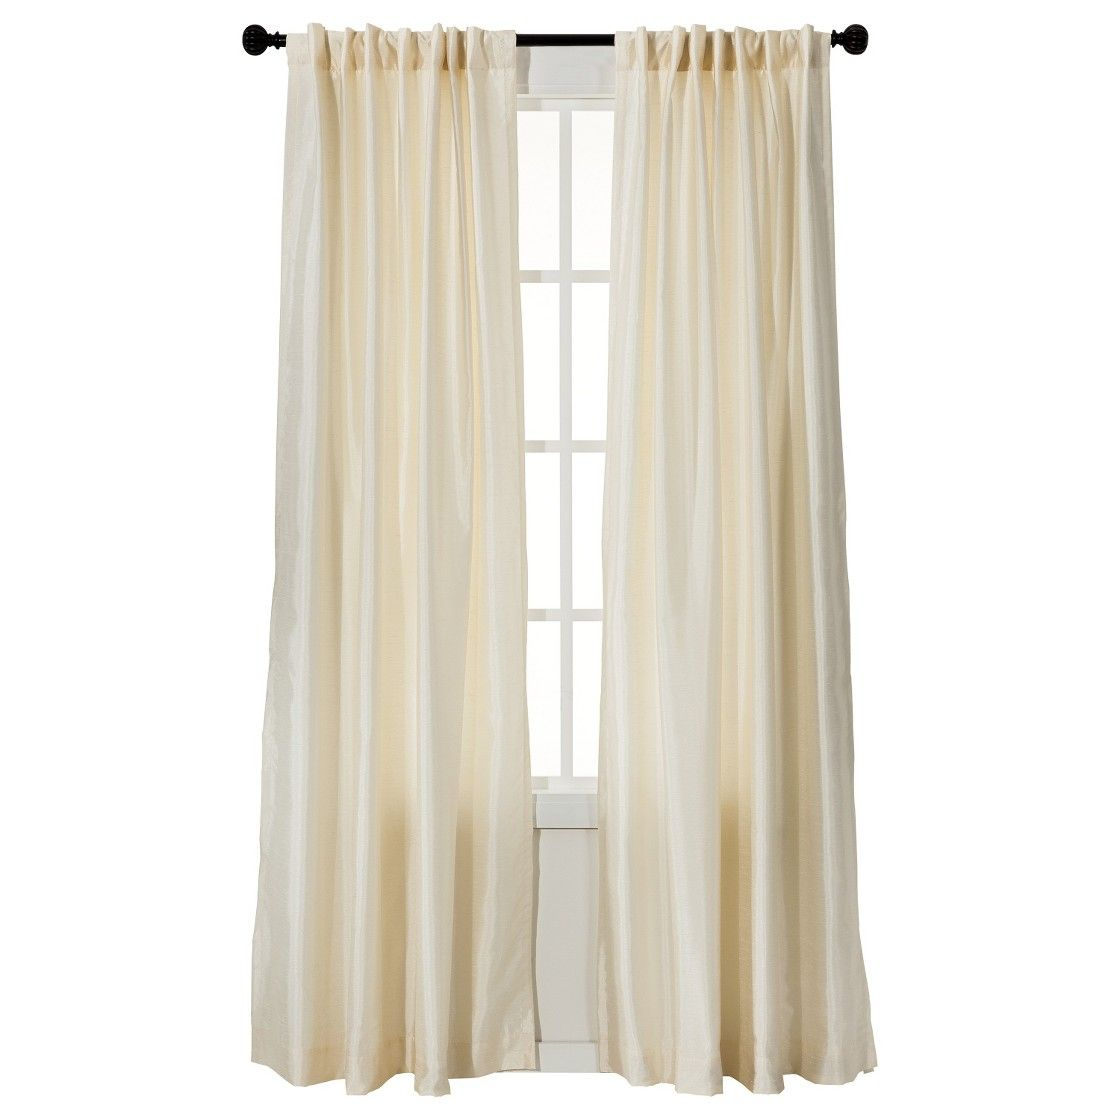 Threshold� Faux Silk Curtain Panel  from Target